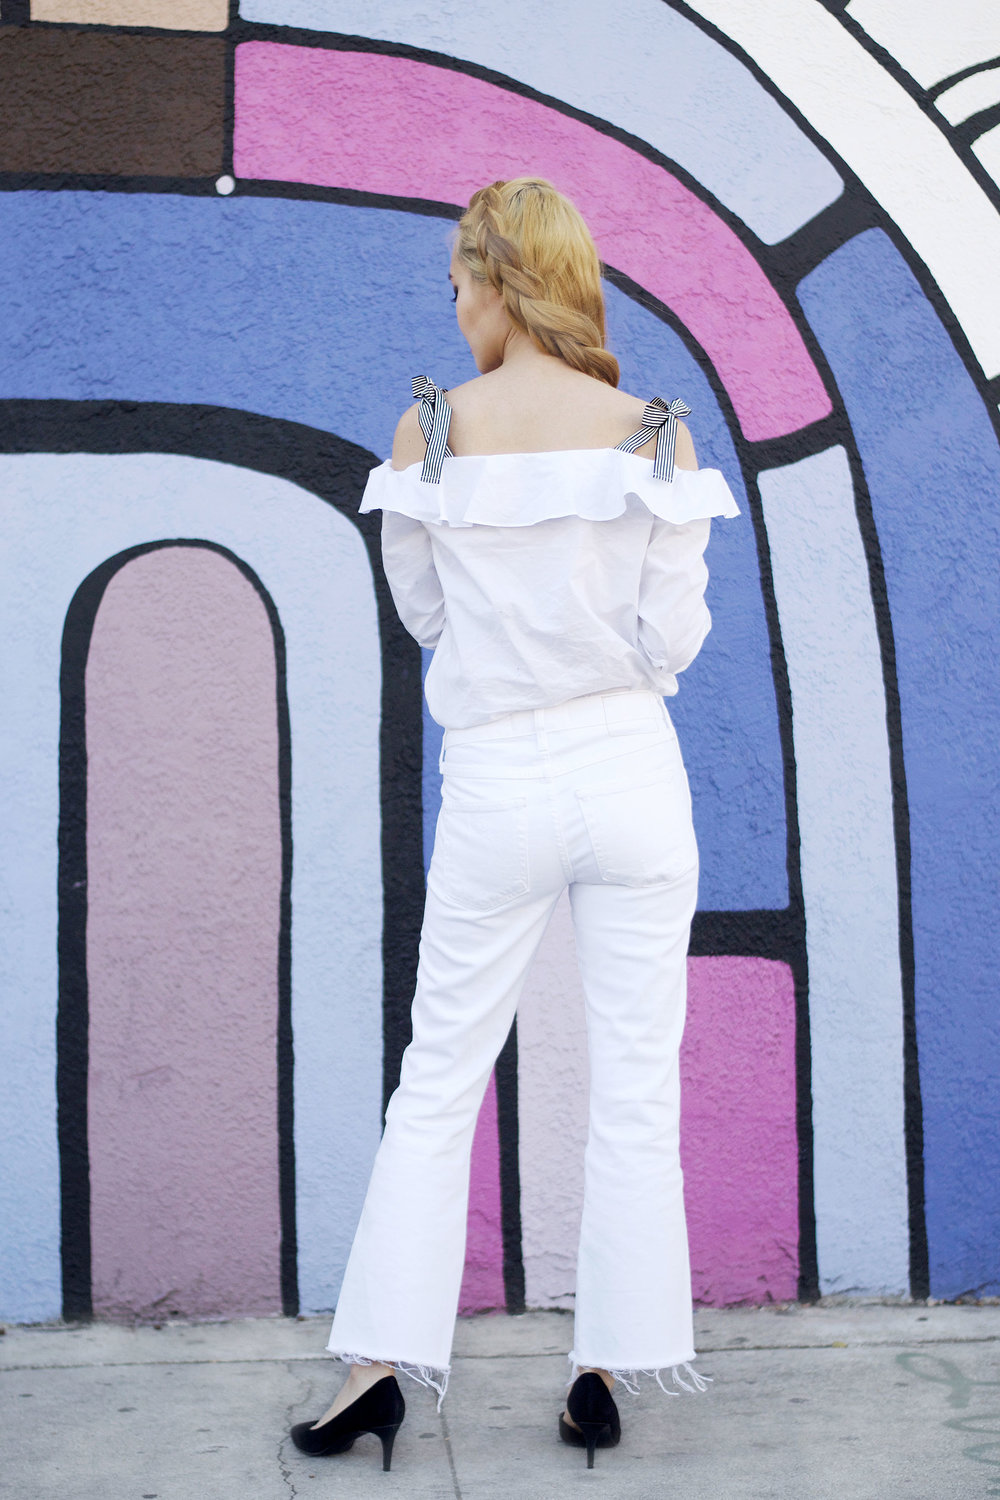 I don't follow fashion rules such as no white until after Memorial Day, so here I am in a white on white look showing you how to wear all white in spring! I love a monochrome look because the minimalist aesthetic is instantly elongating, simple yet fresh, and always chic. My all white look is so simple: pair a cute white blouse/top with a great-fitting pair of white denim. | SPRING FASHION | AMO JEANS | ALL WHITE OUTFIT | SPRING OUTFIT IDEAS | WHITE JEANS | OFF THE SHOULDER TOP | TIE SHOULDER |